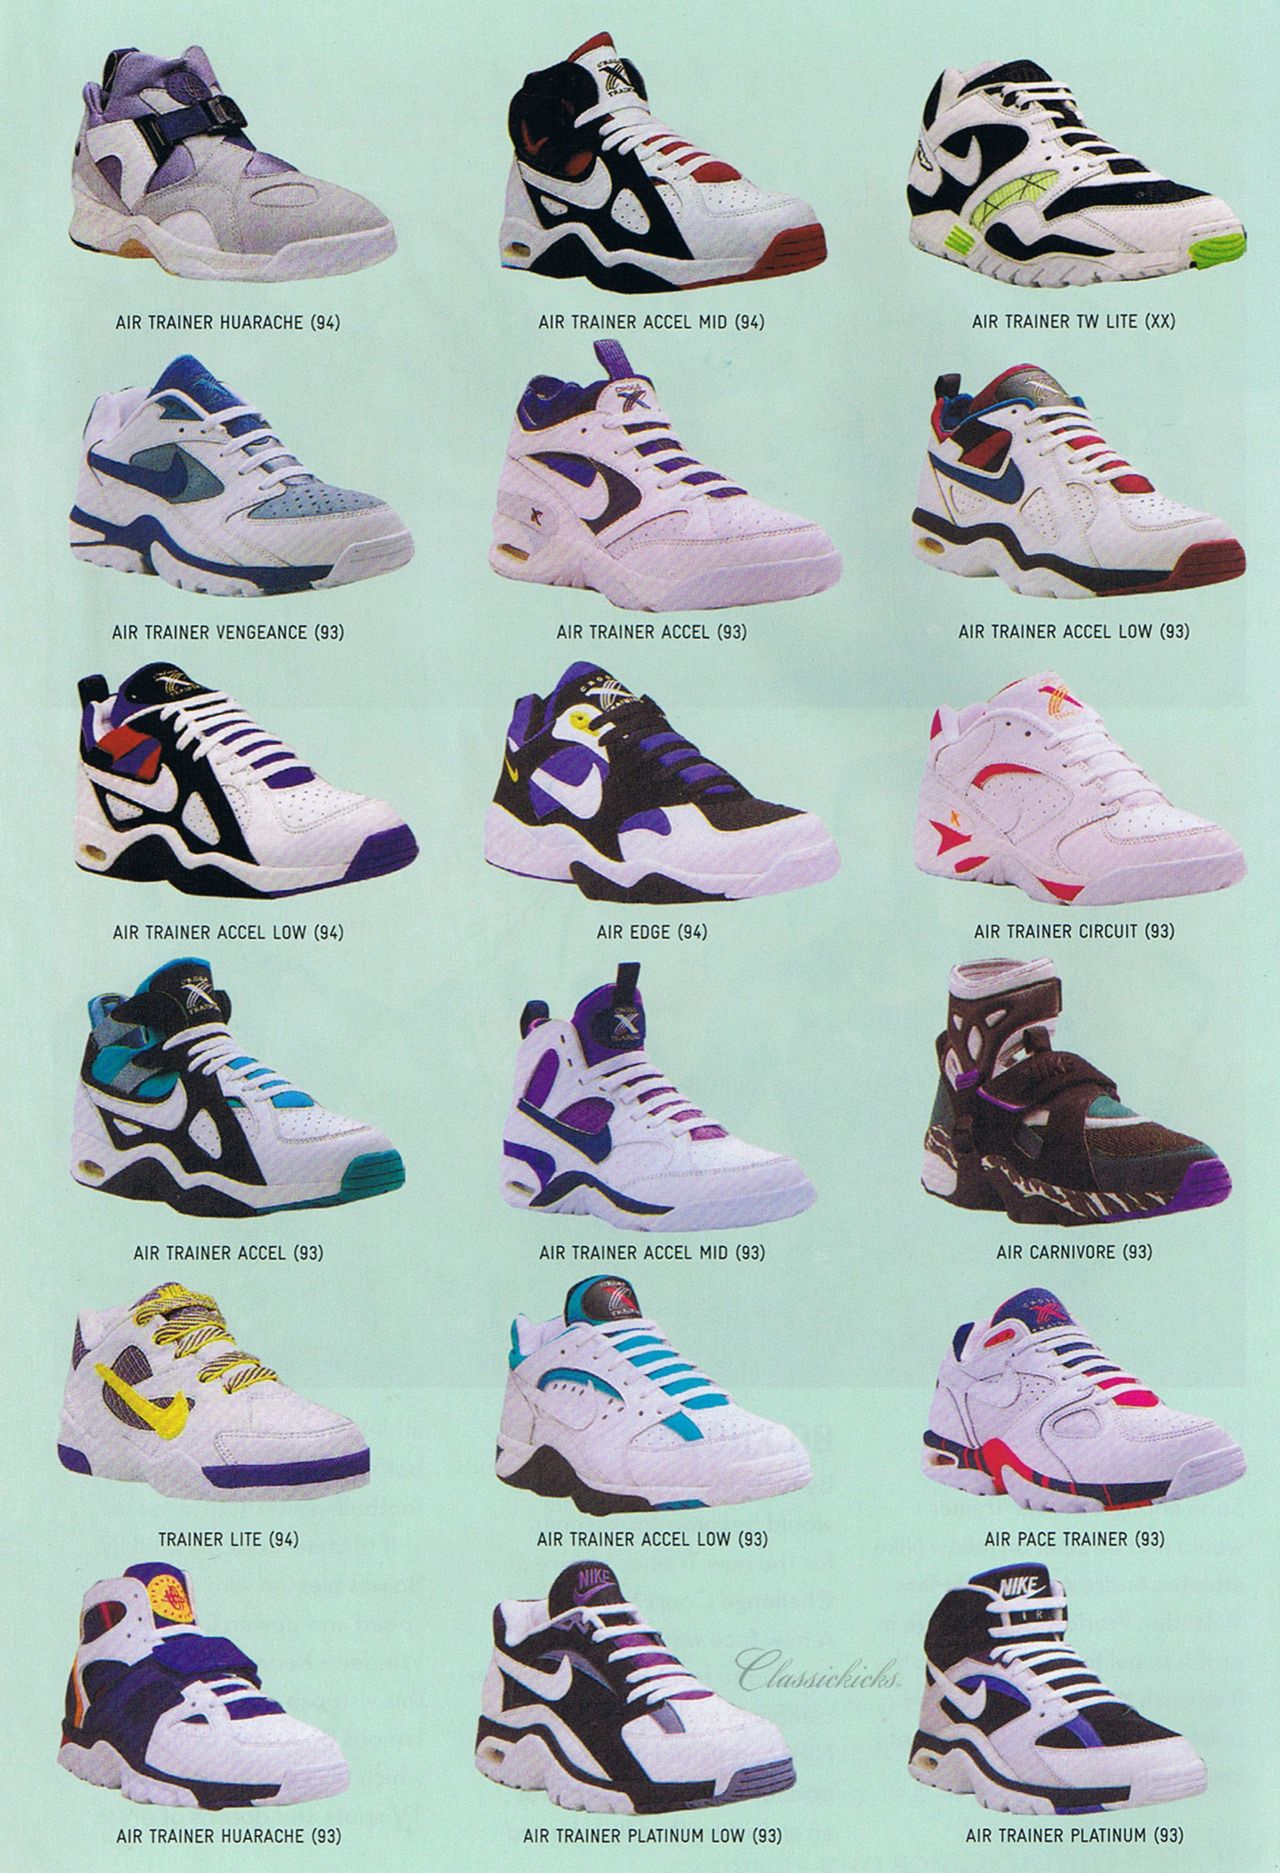 Remember when all the cool sneakers used to look like these ...